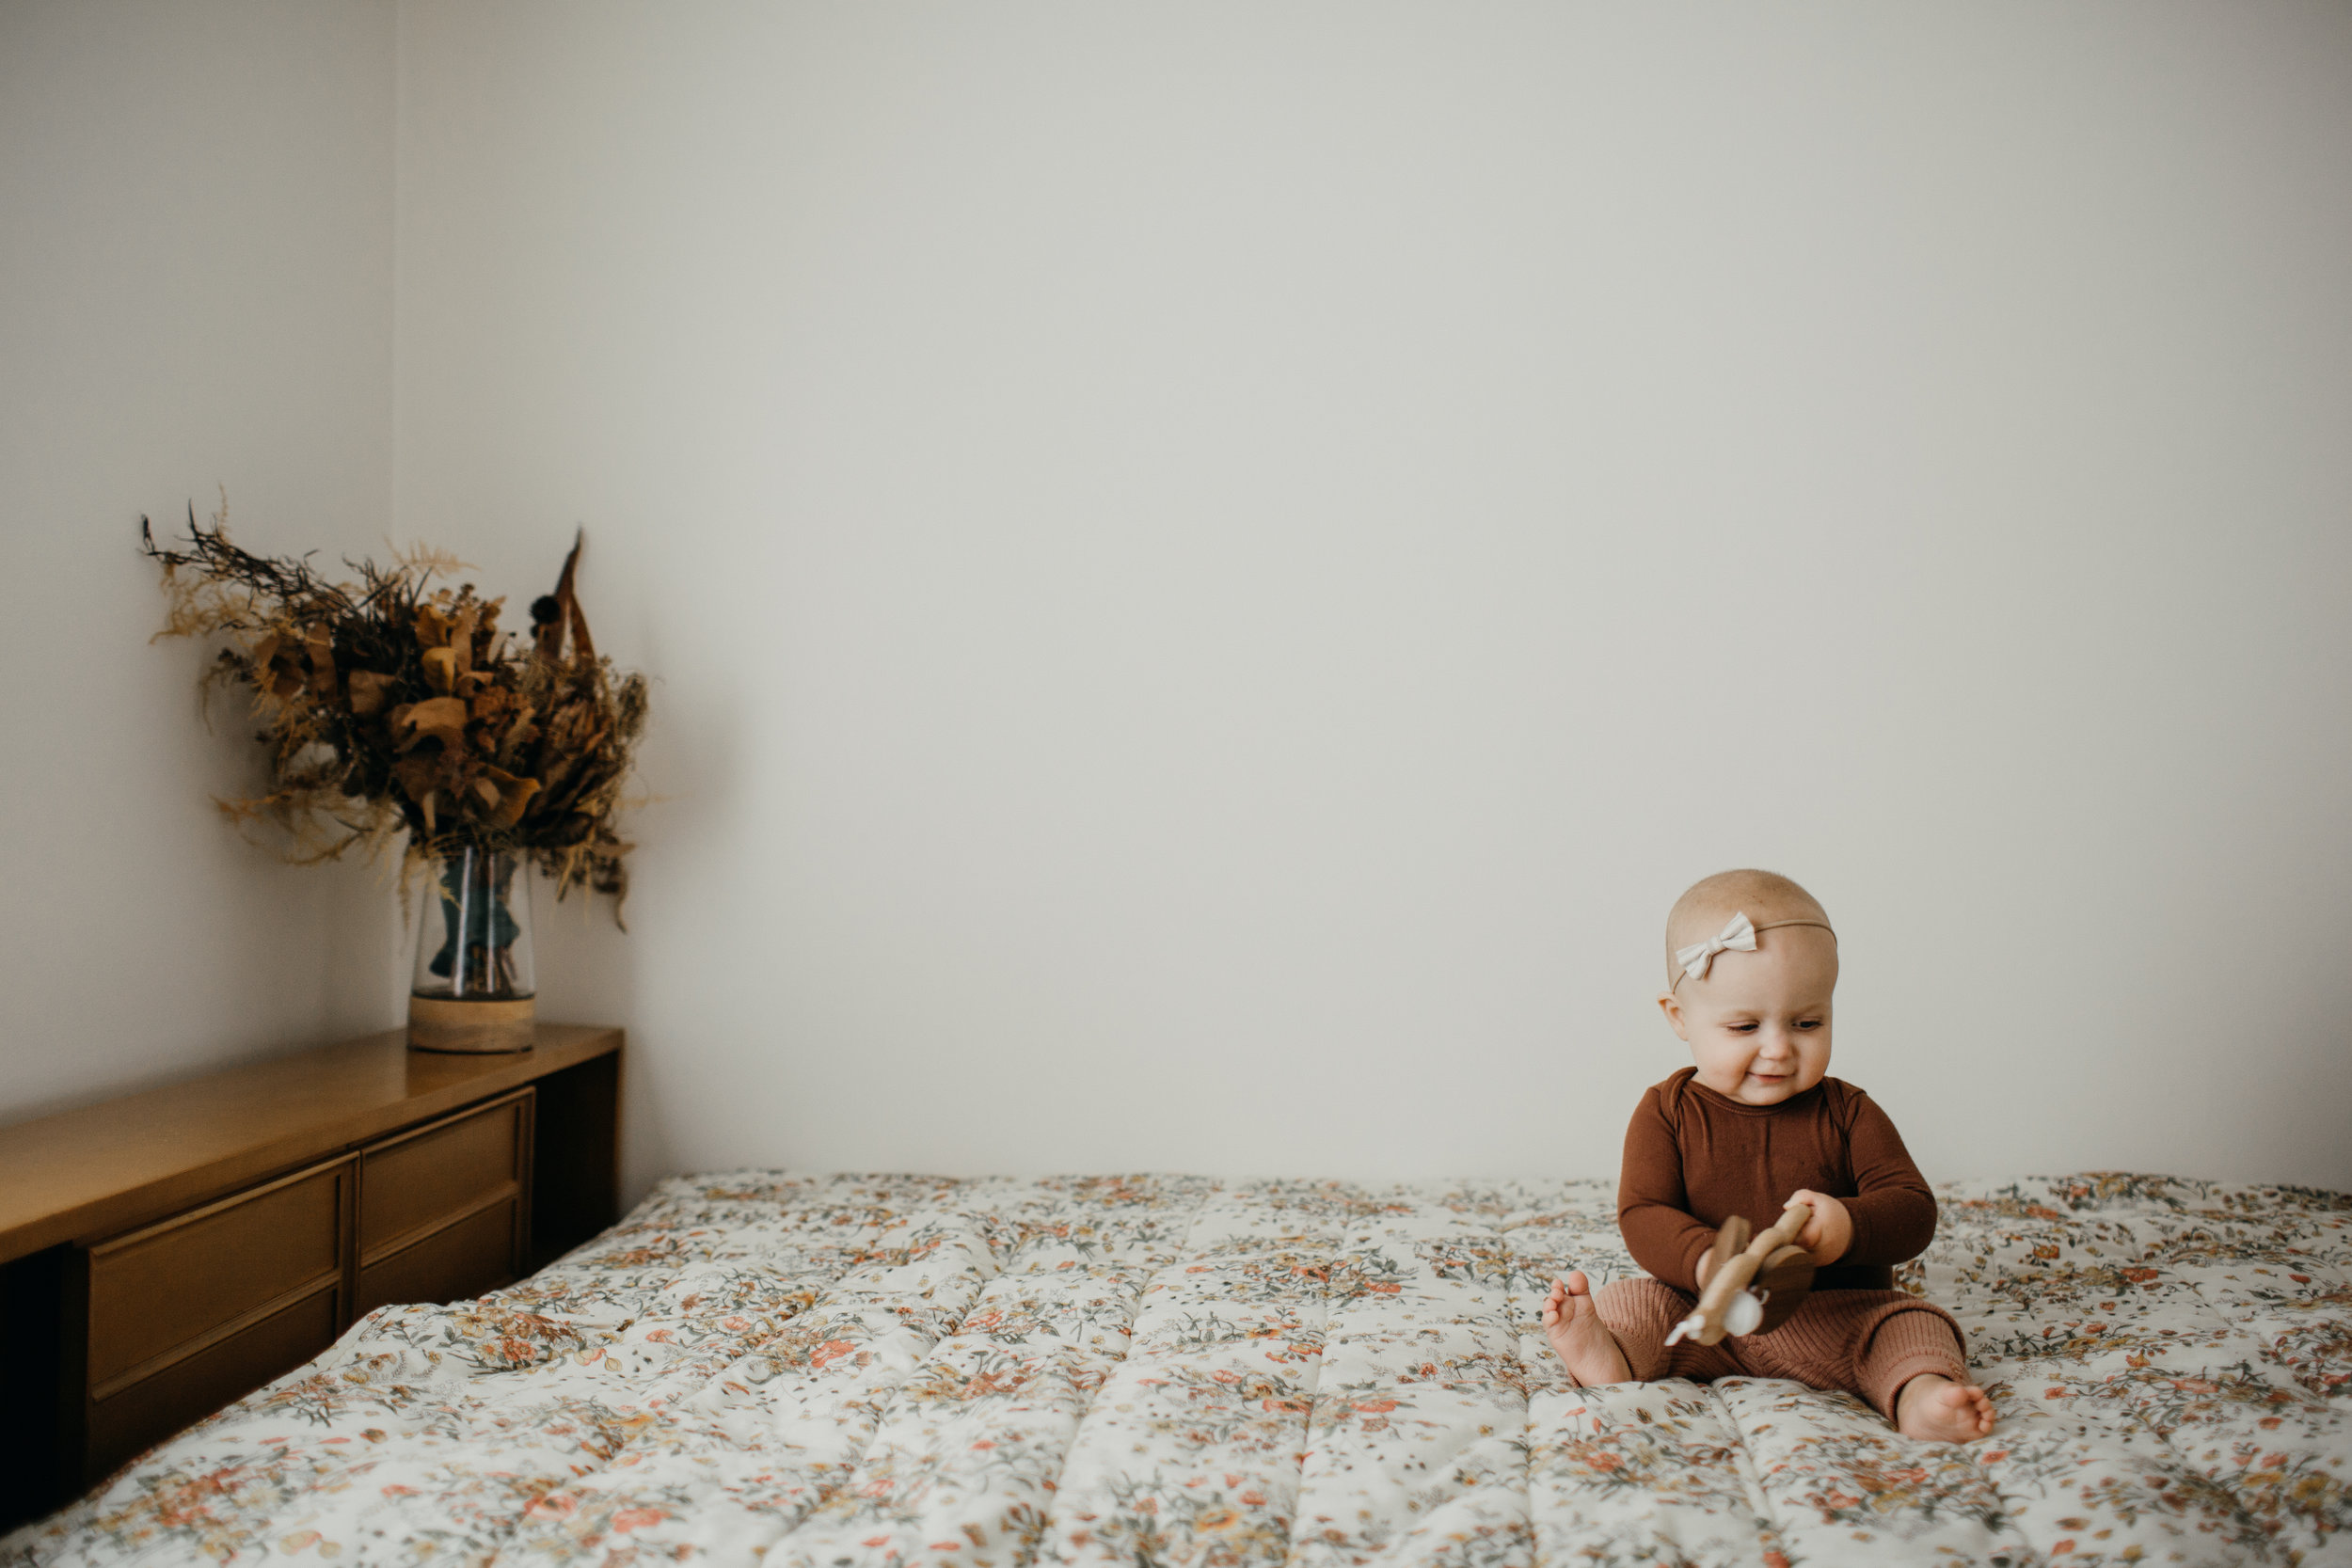 andrie_10months-9.jpg